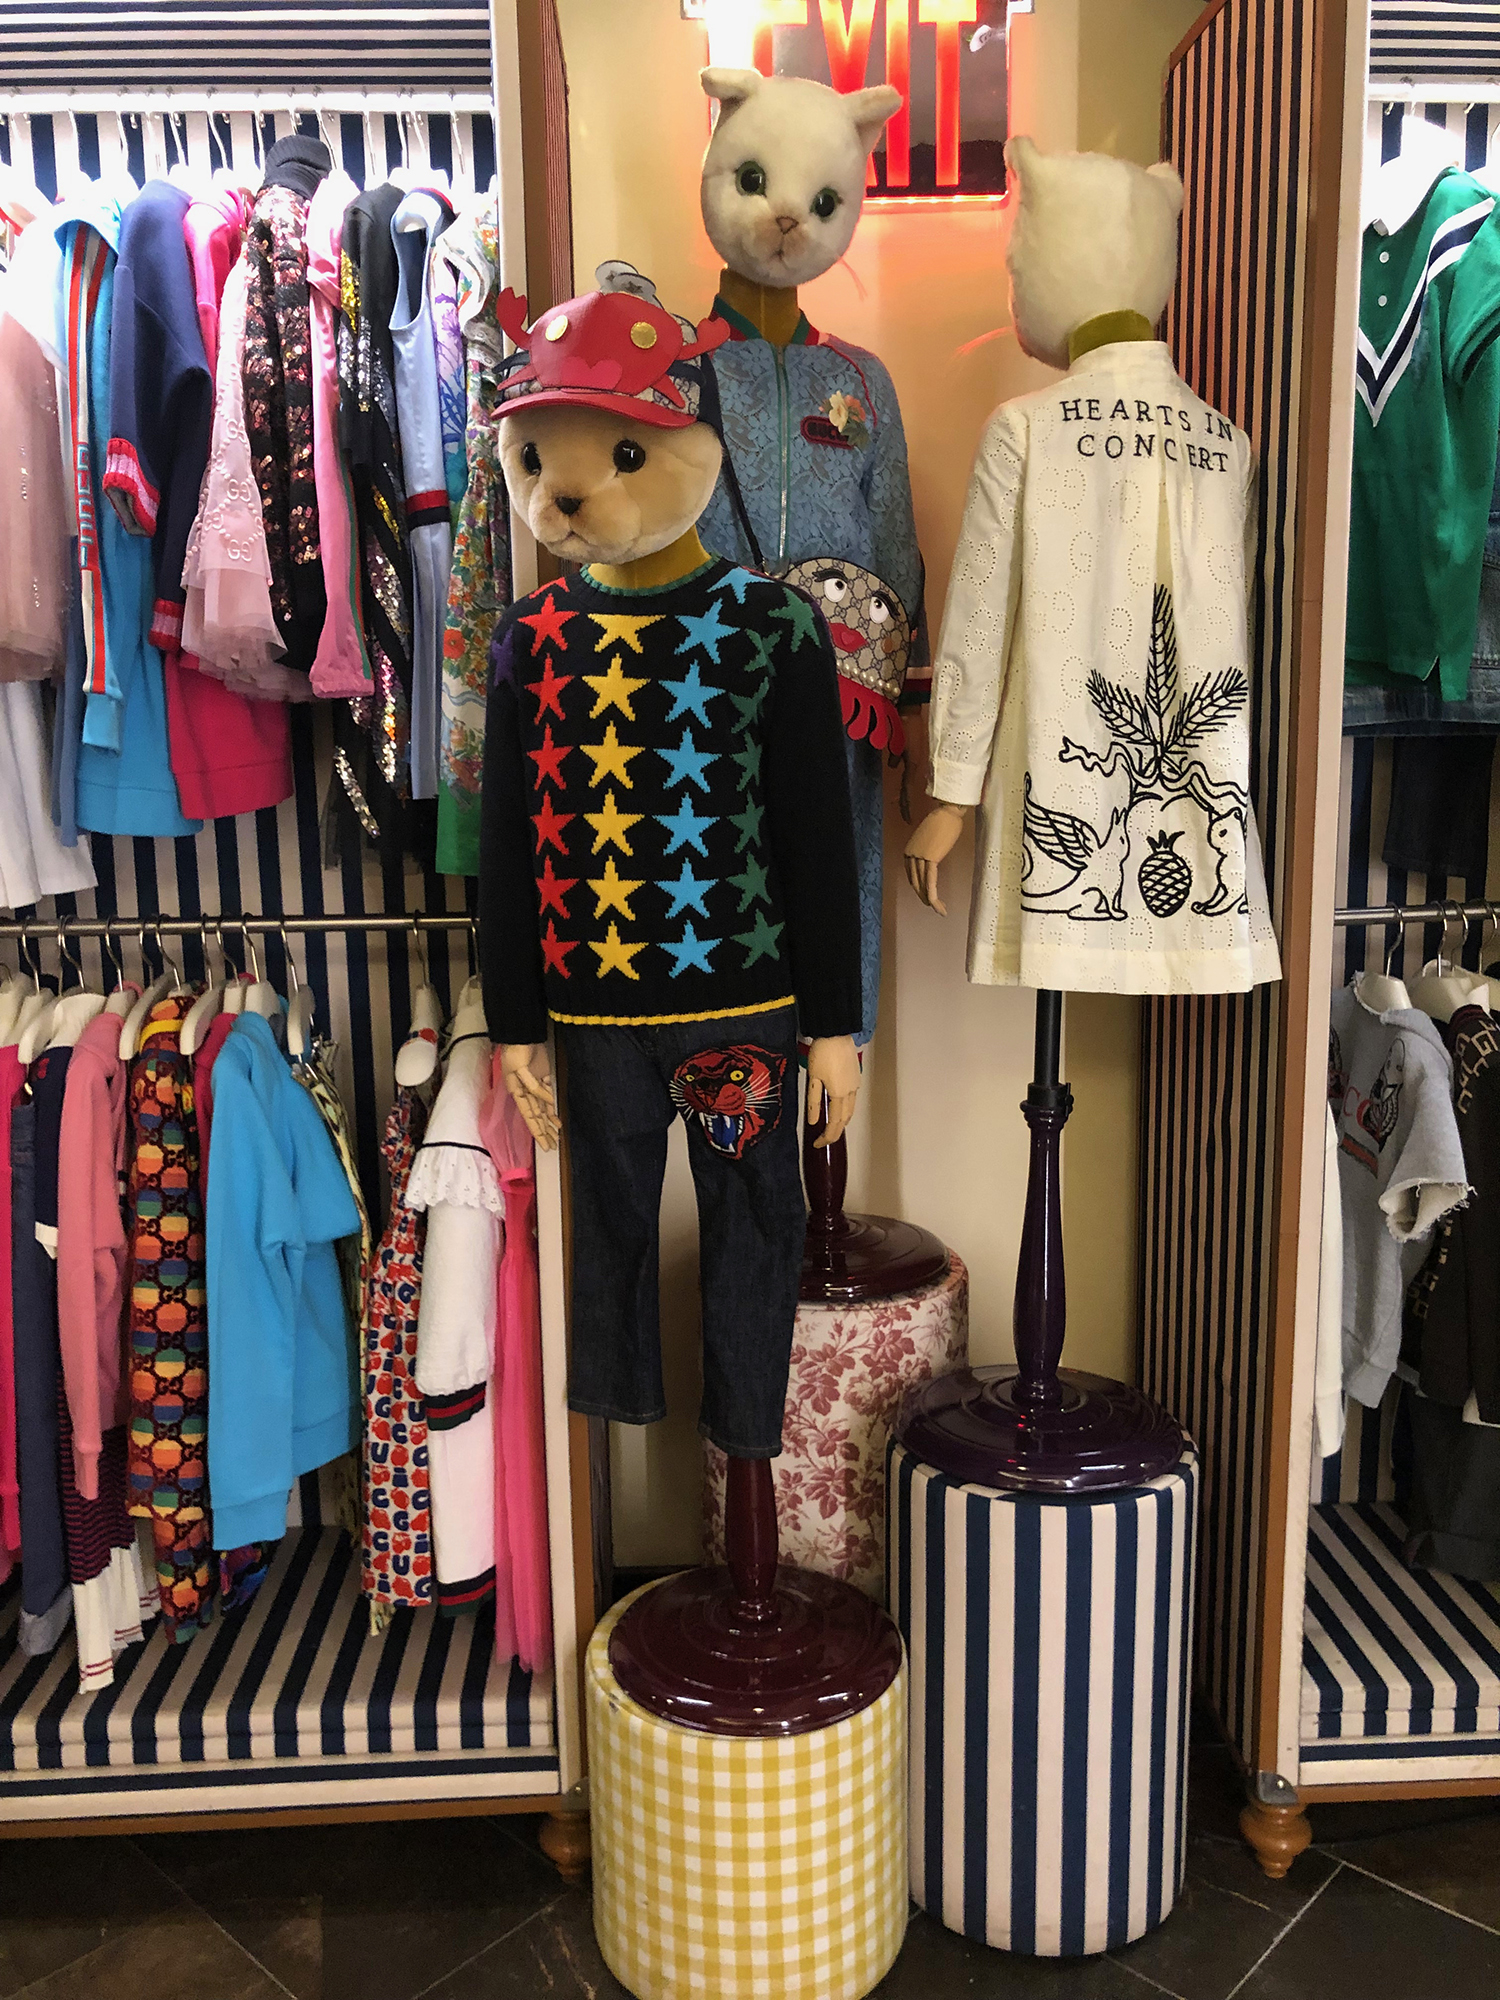 Gucci kids collection at Bergdorf Goodman in nyc!